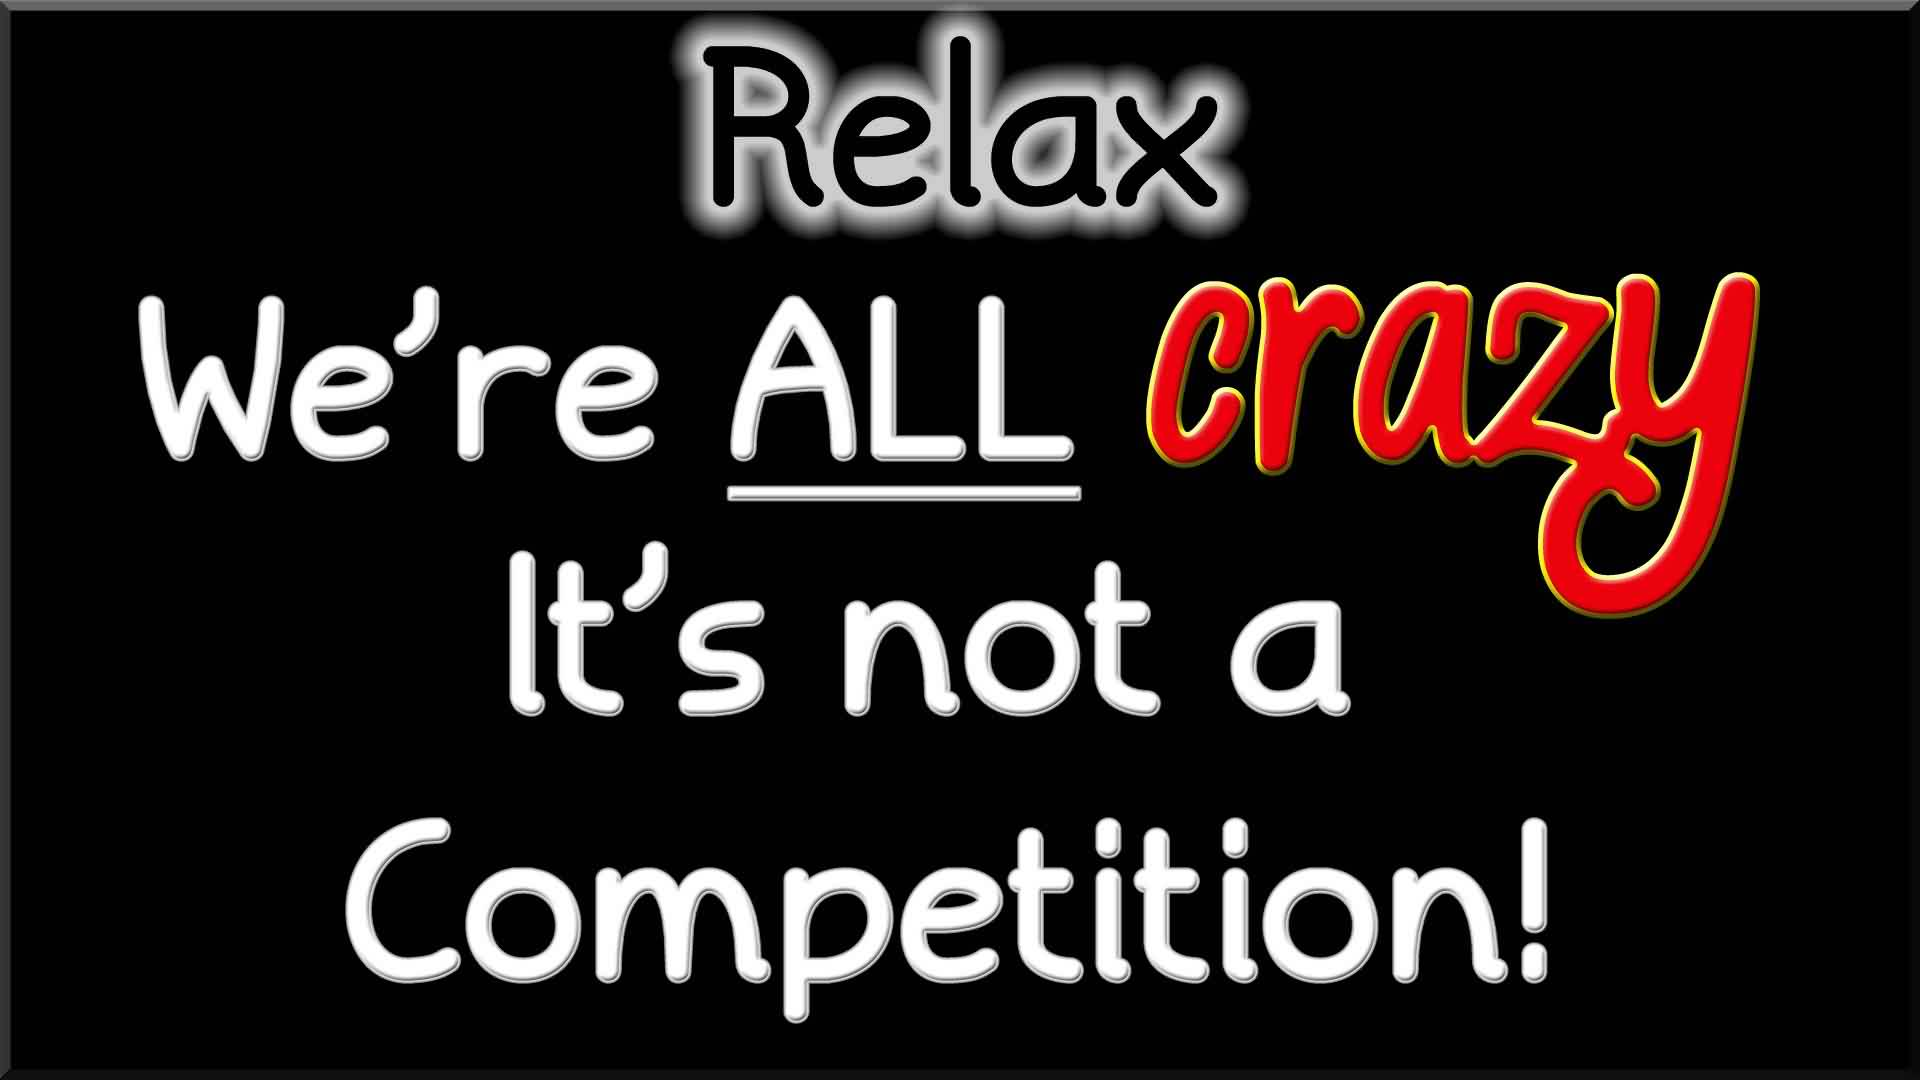 Short new Funny Facebook Quotes images - We are all crazy it's not a competition